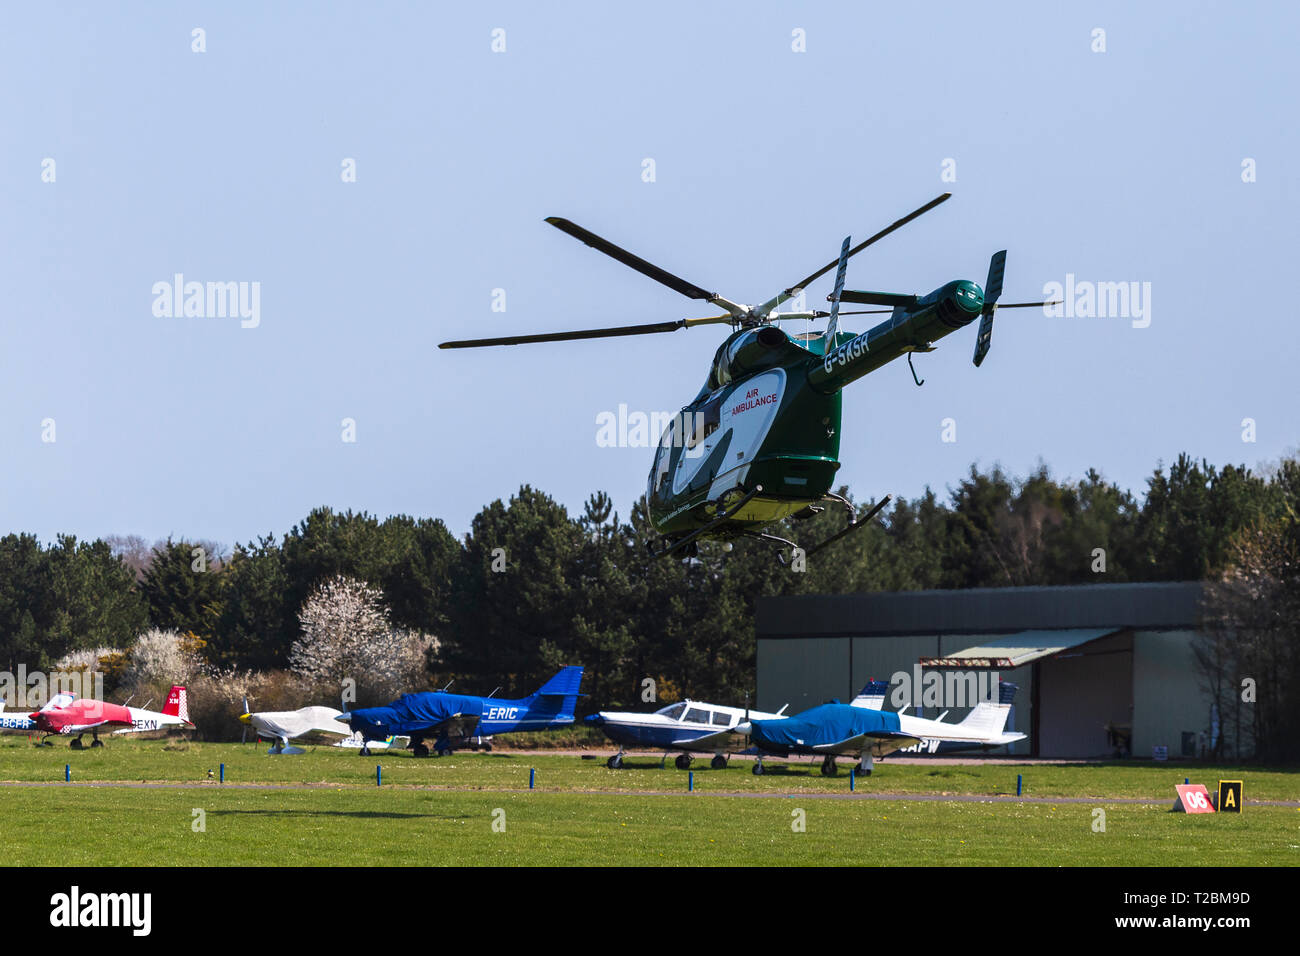 Helicopter Operating for Essex & Herts Air Ambulance Taking off from Earls Colne Aerodrome in Essex on a Fine Spring Day - Stock Image